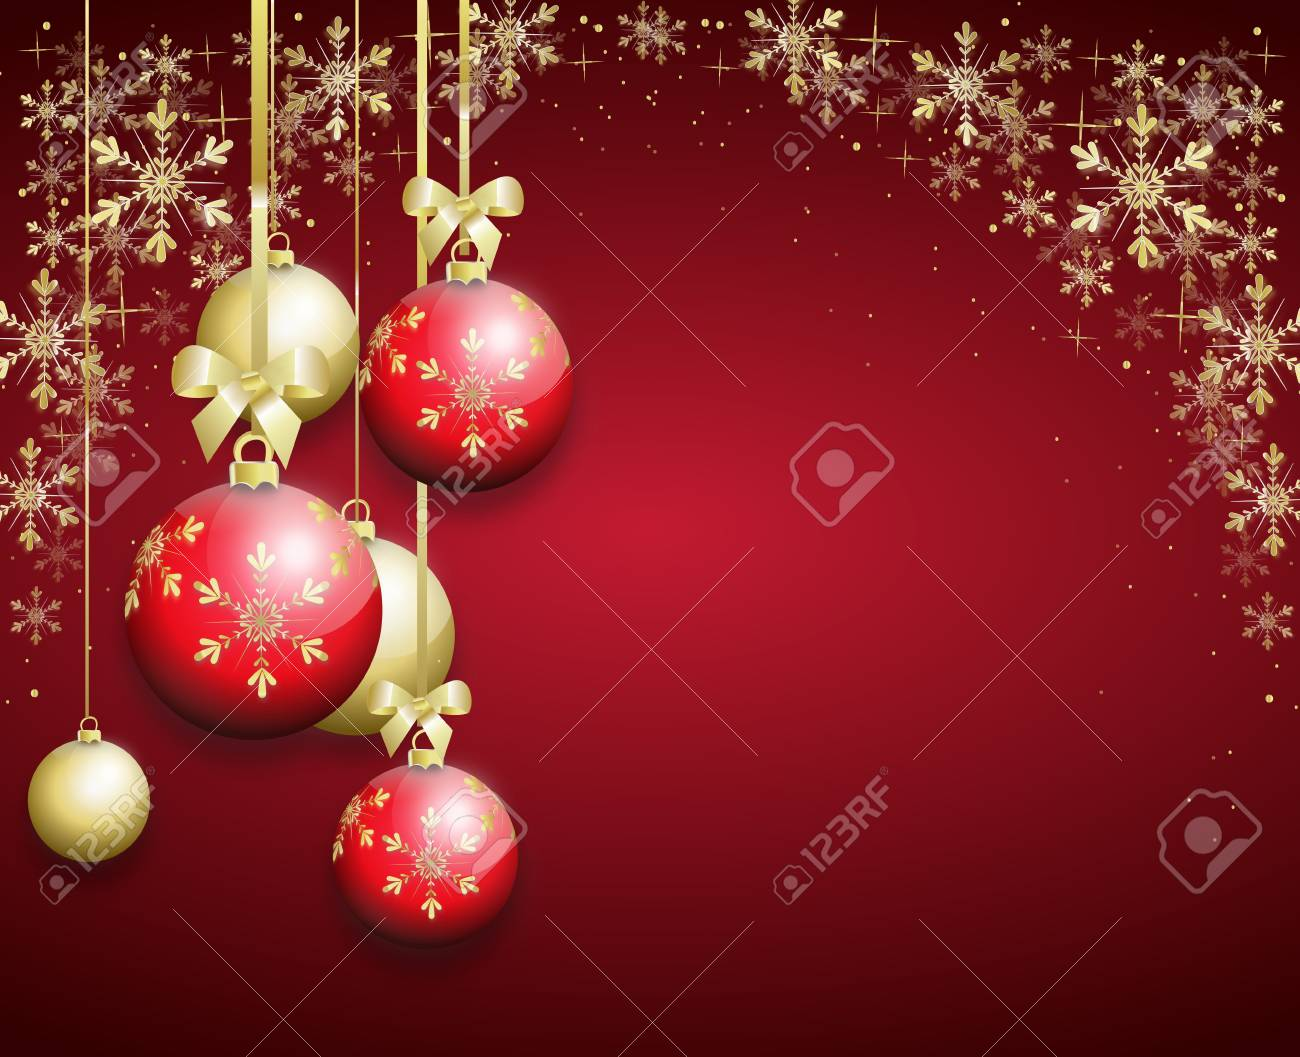 Christmas Bulbs.Red Christmas Background Decorated With Golden Christmas Bulbs